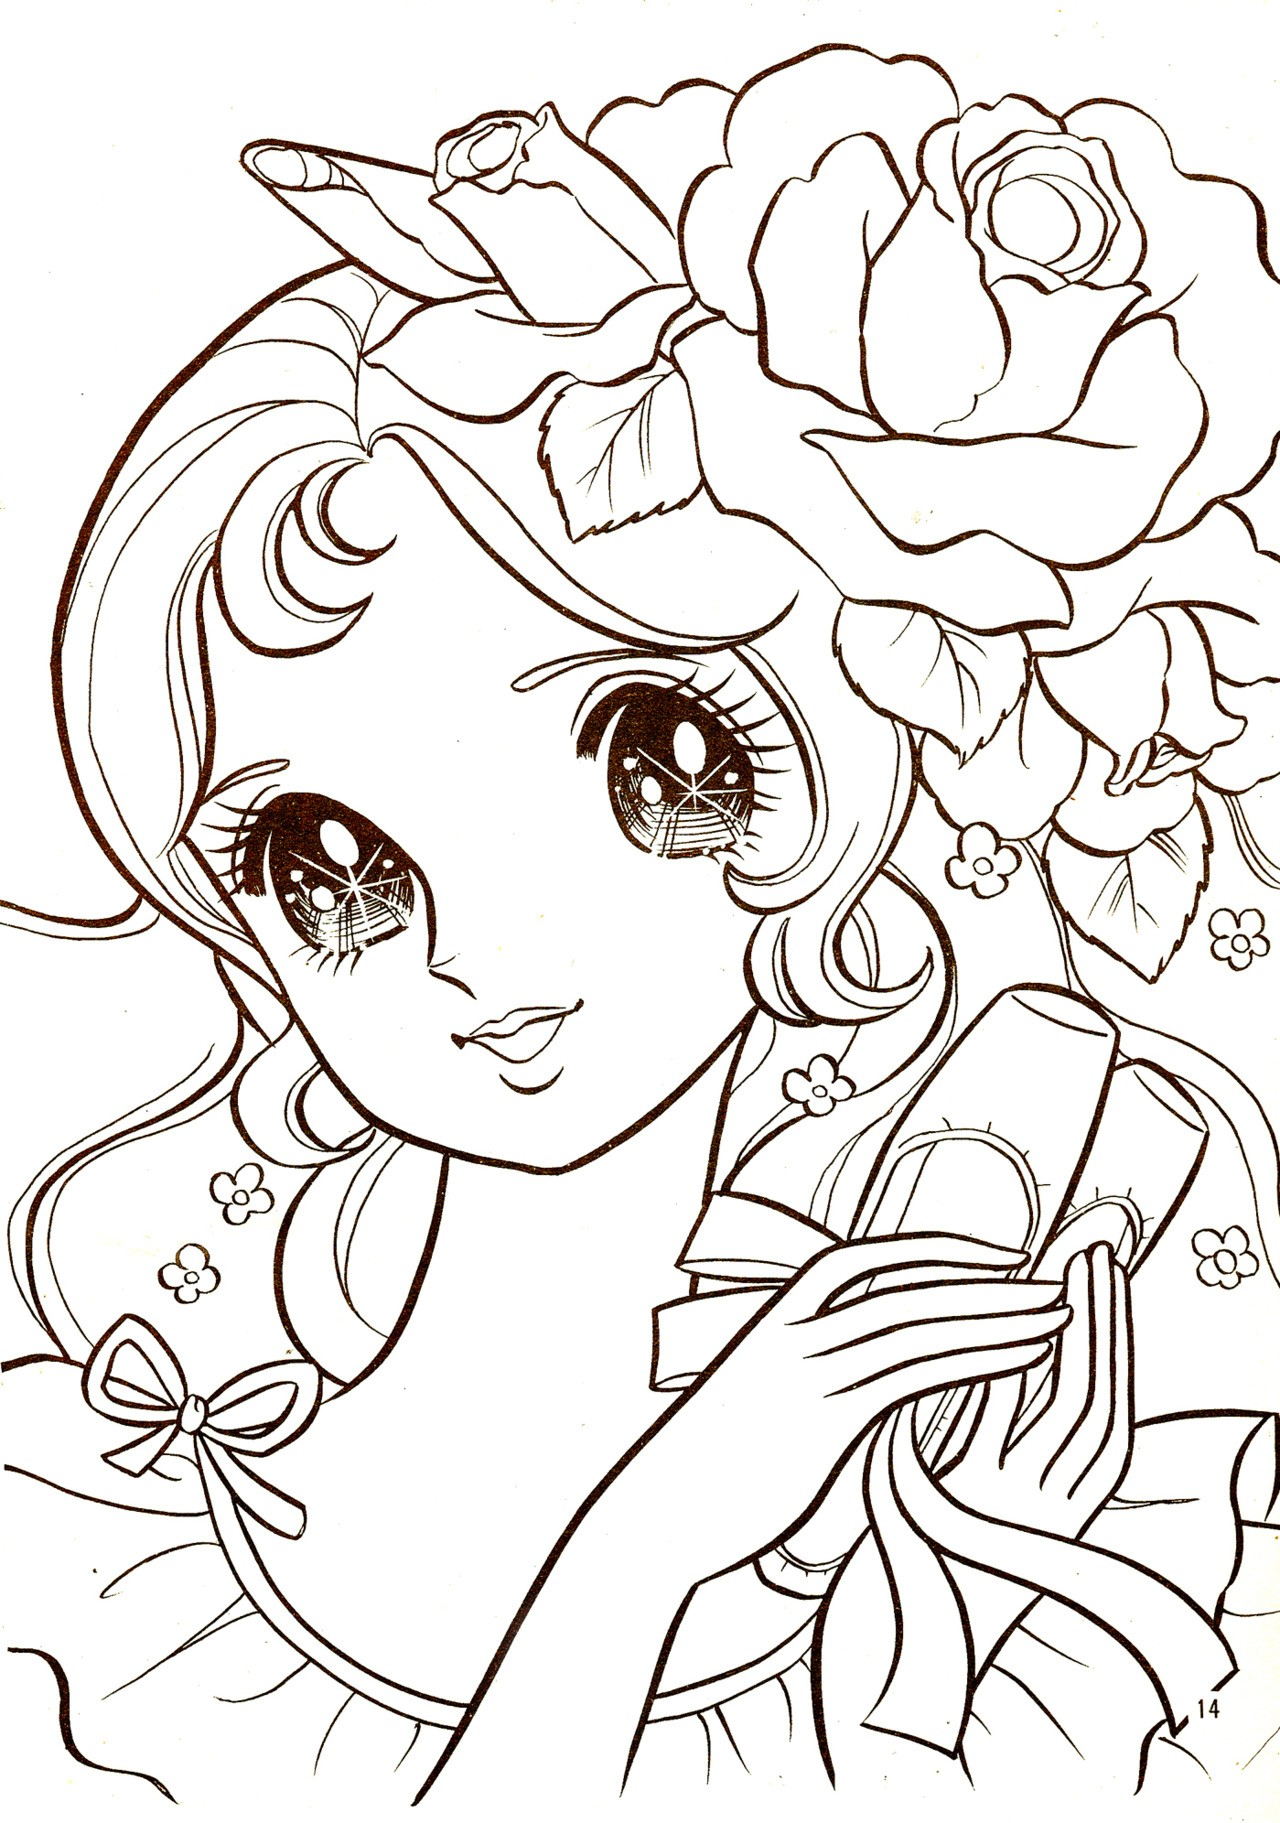 1280x1823 Marmalade Boy Anime Coloring Pages For Kids Awesome Manga Coloring